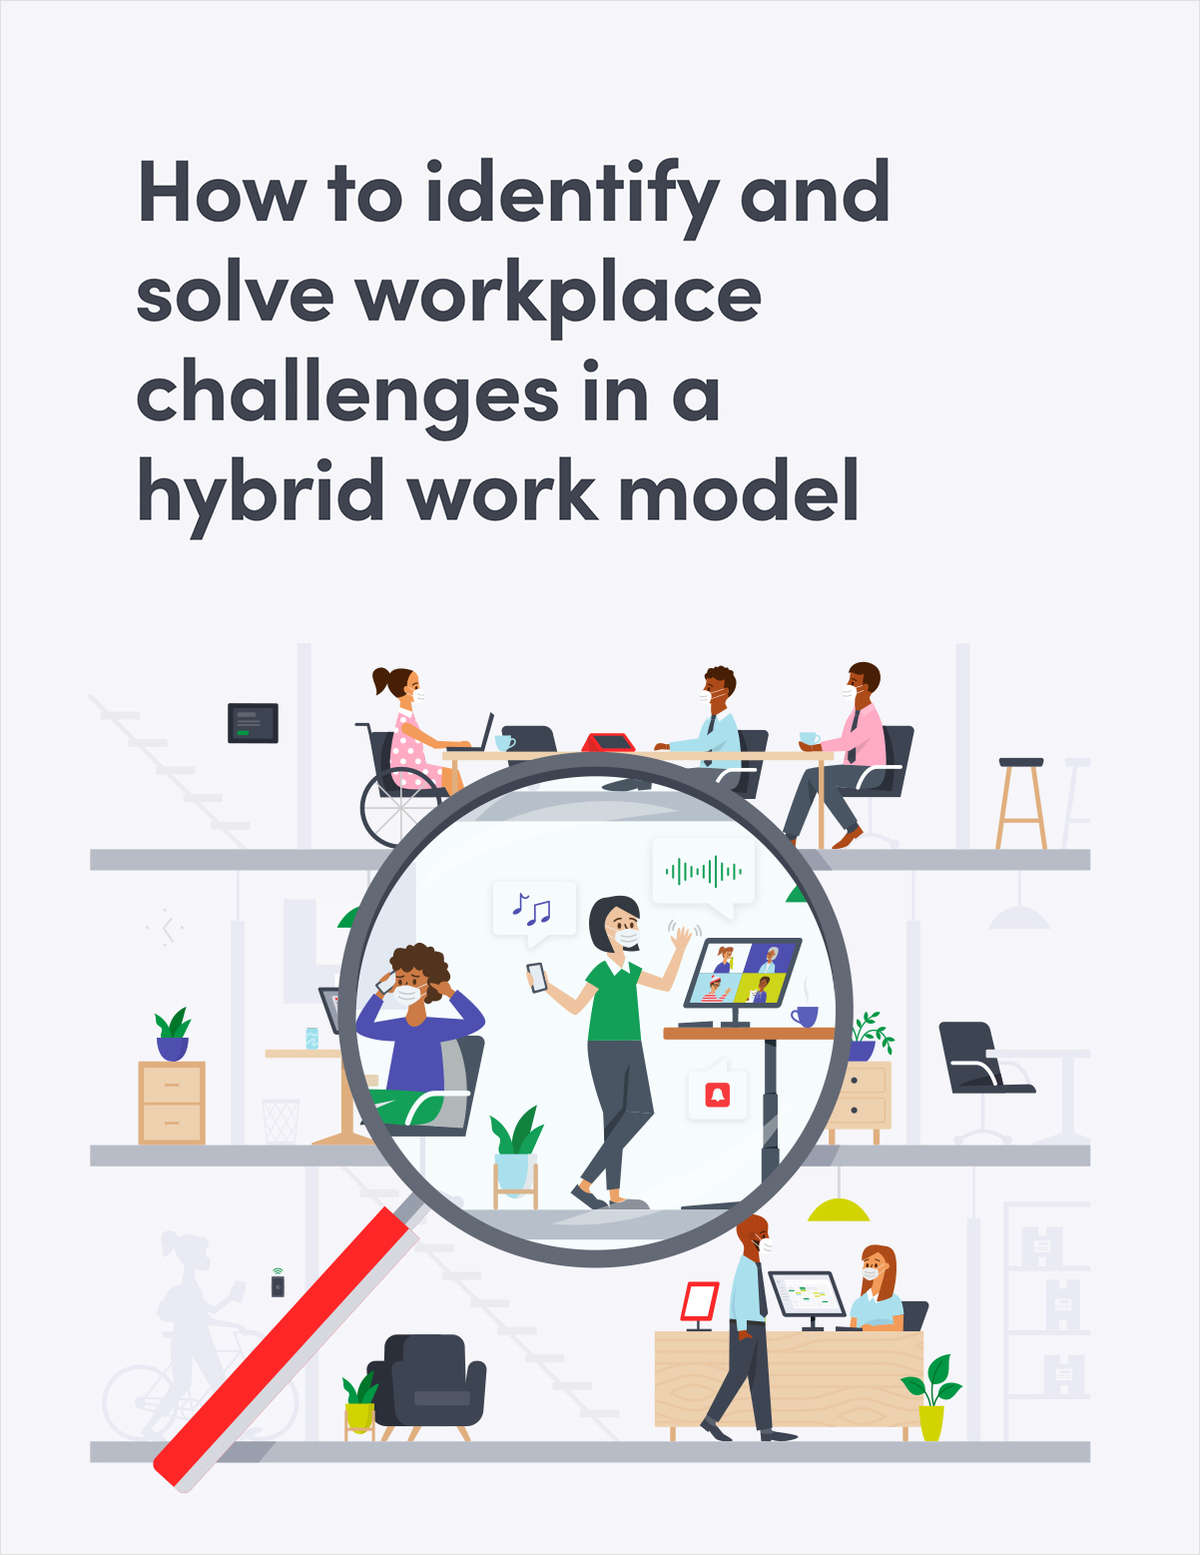 How to identify and solve workplace challenges in a hybrid work model